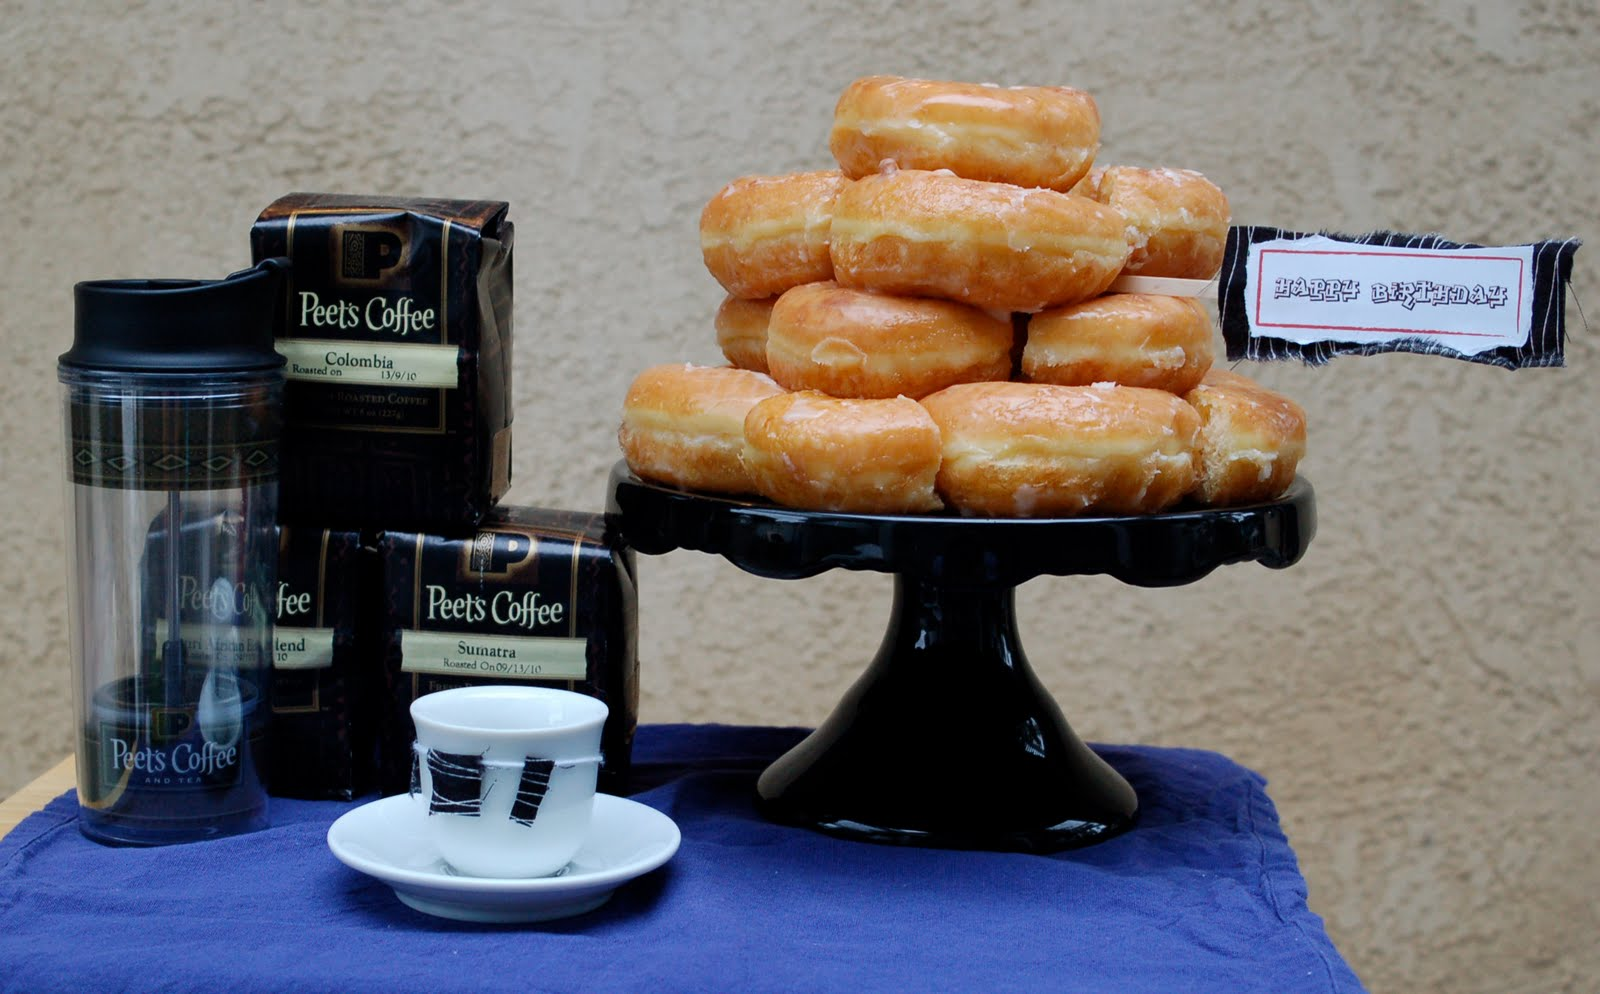 Coffee and Donuts anyone? - Cupcakes and Cutlery